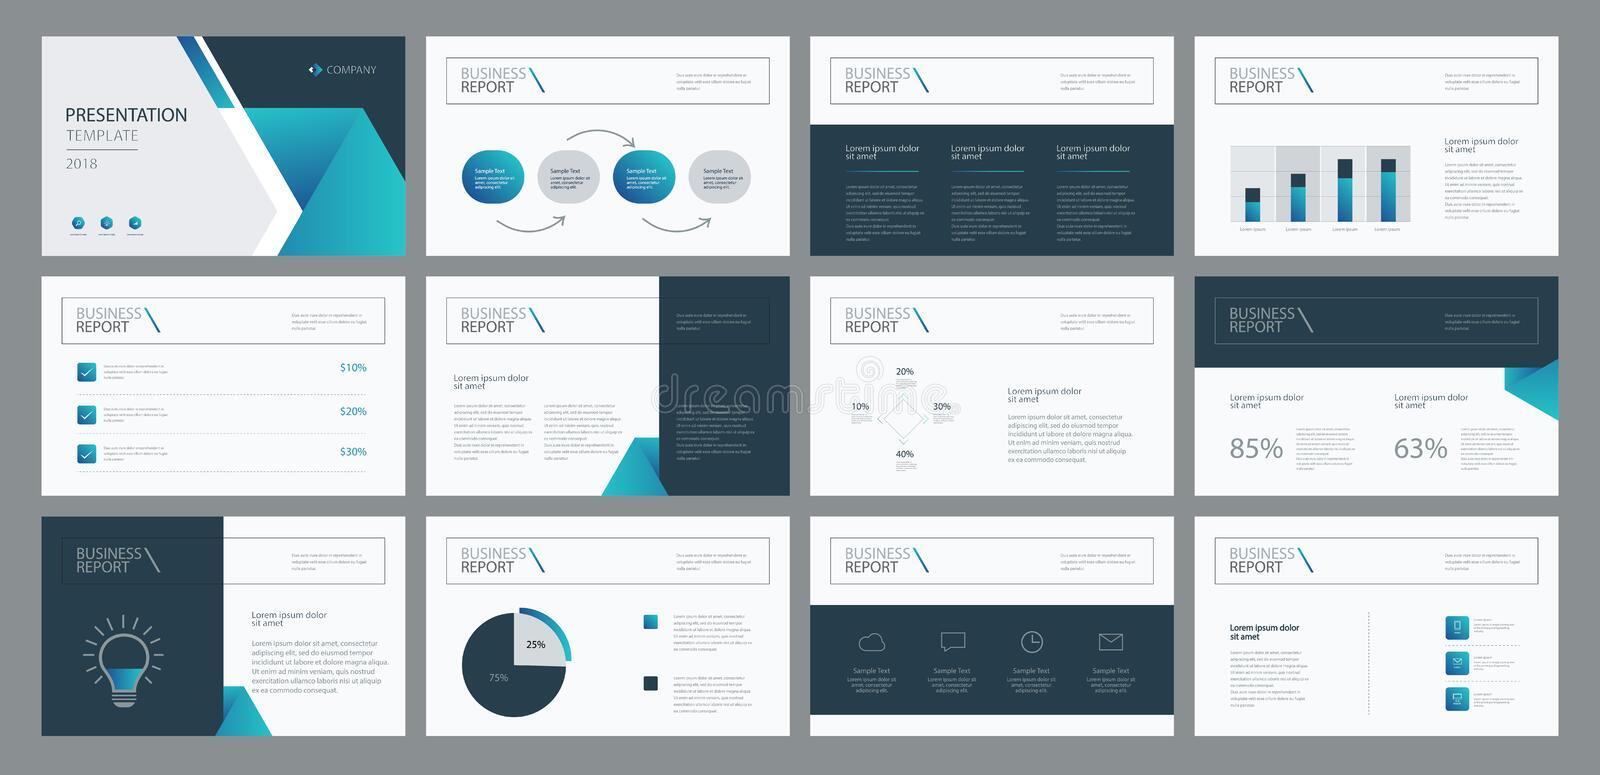 Business presentation template design and page layout design for brochure ,annual report and company profile. With info graphic elements royalty free illustration